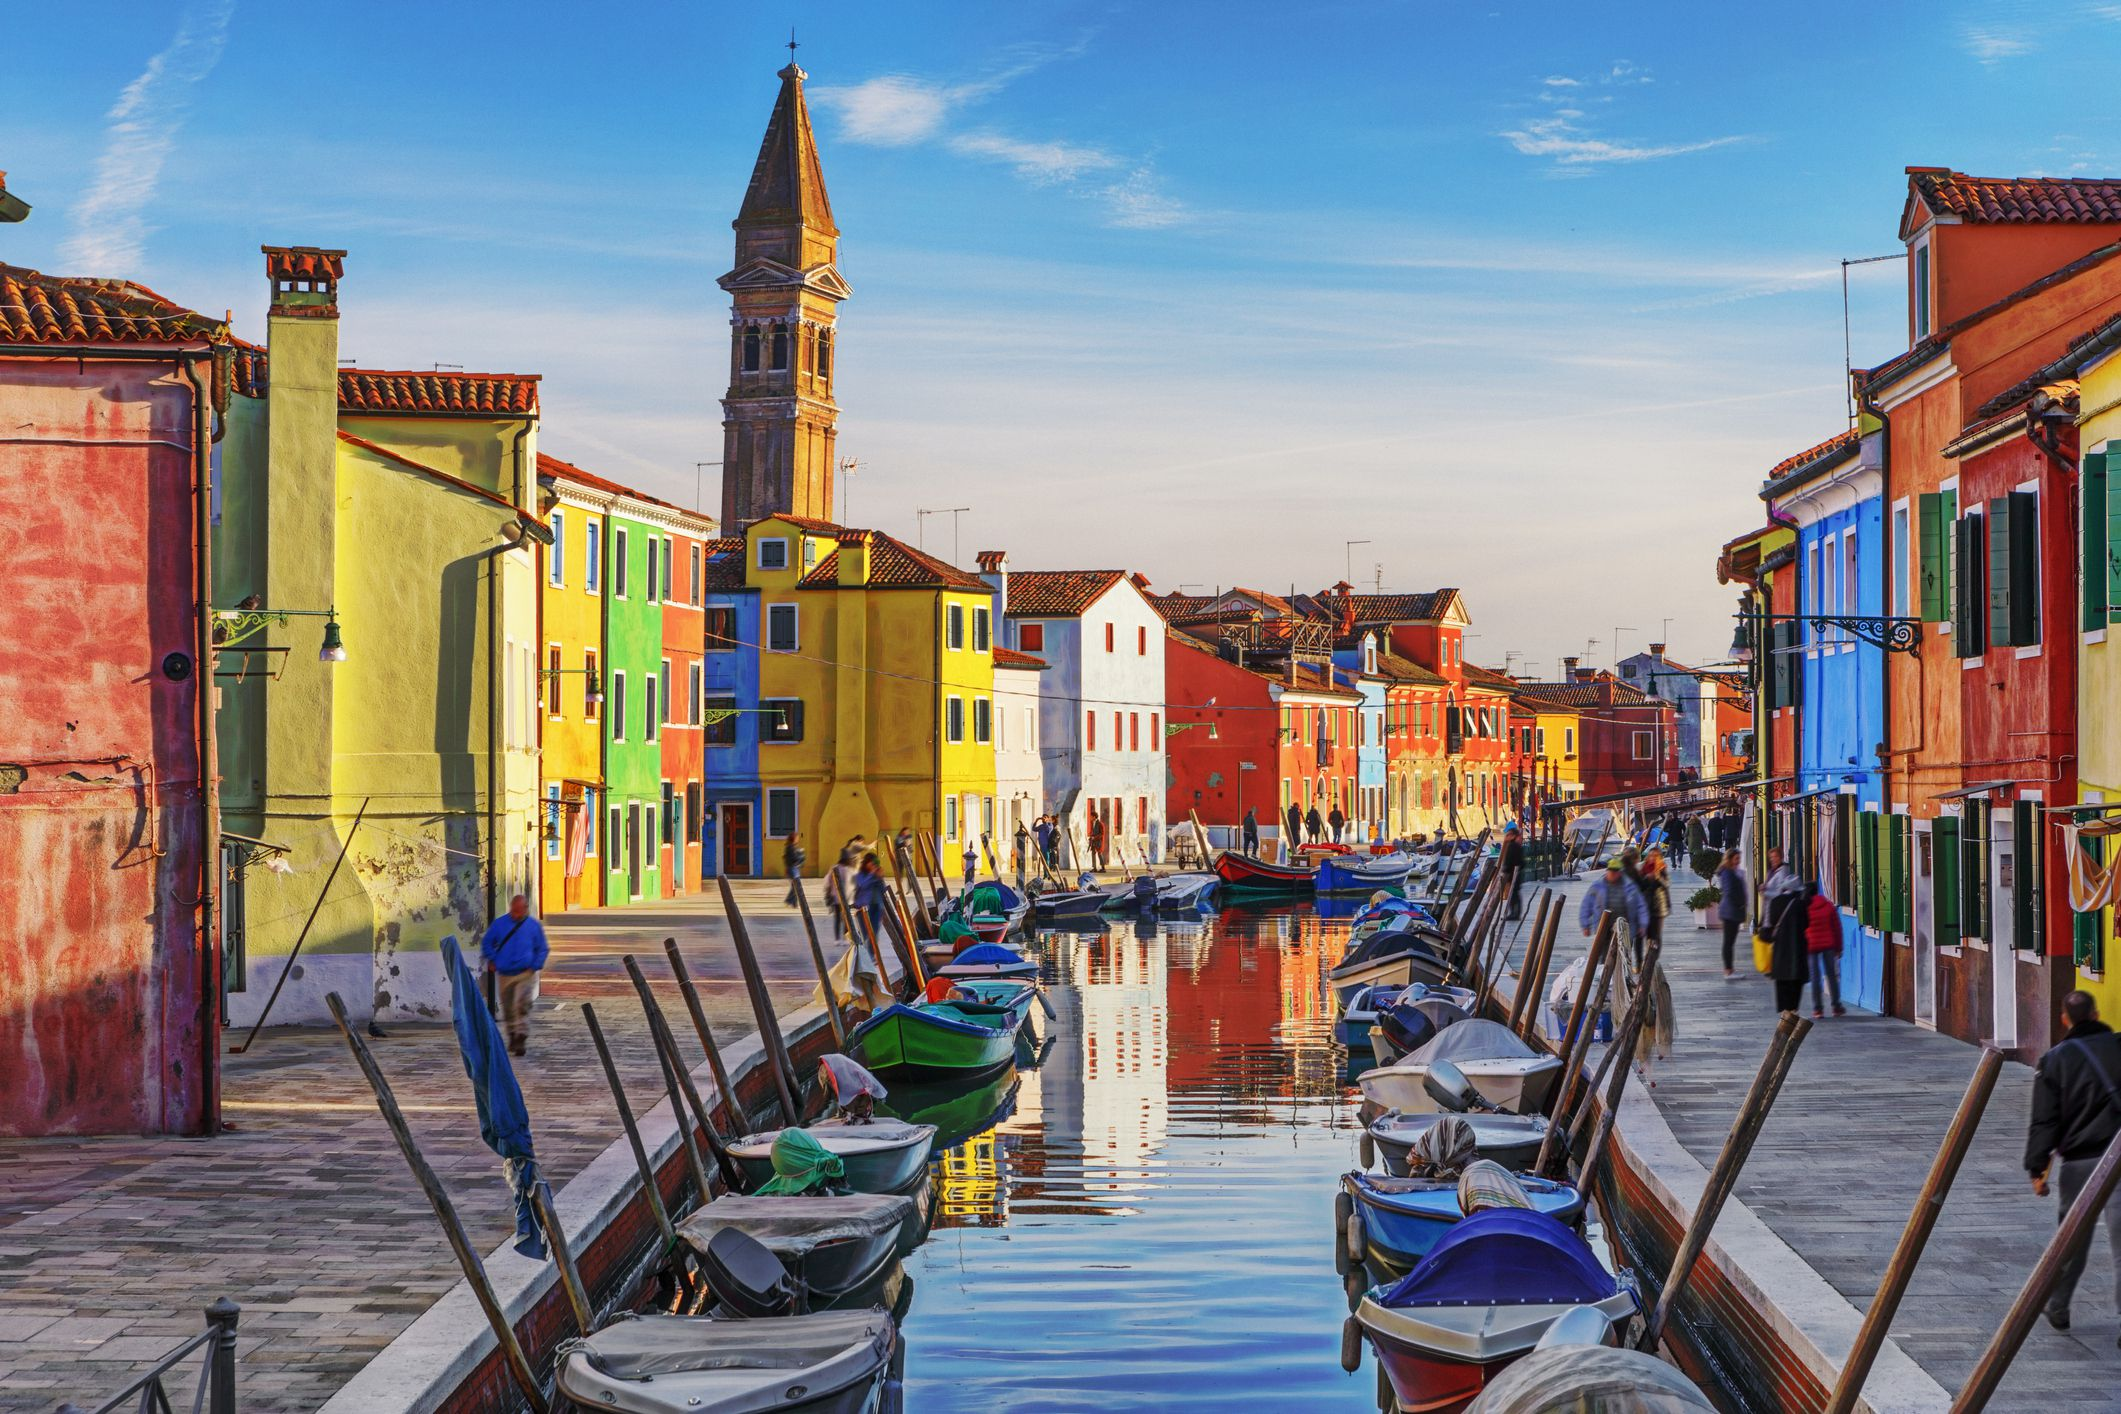 The Weather and Climate in Venice, Italy